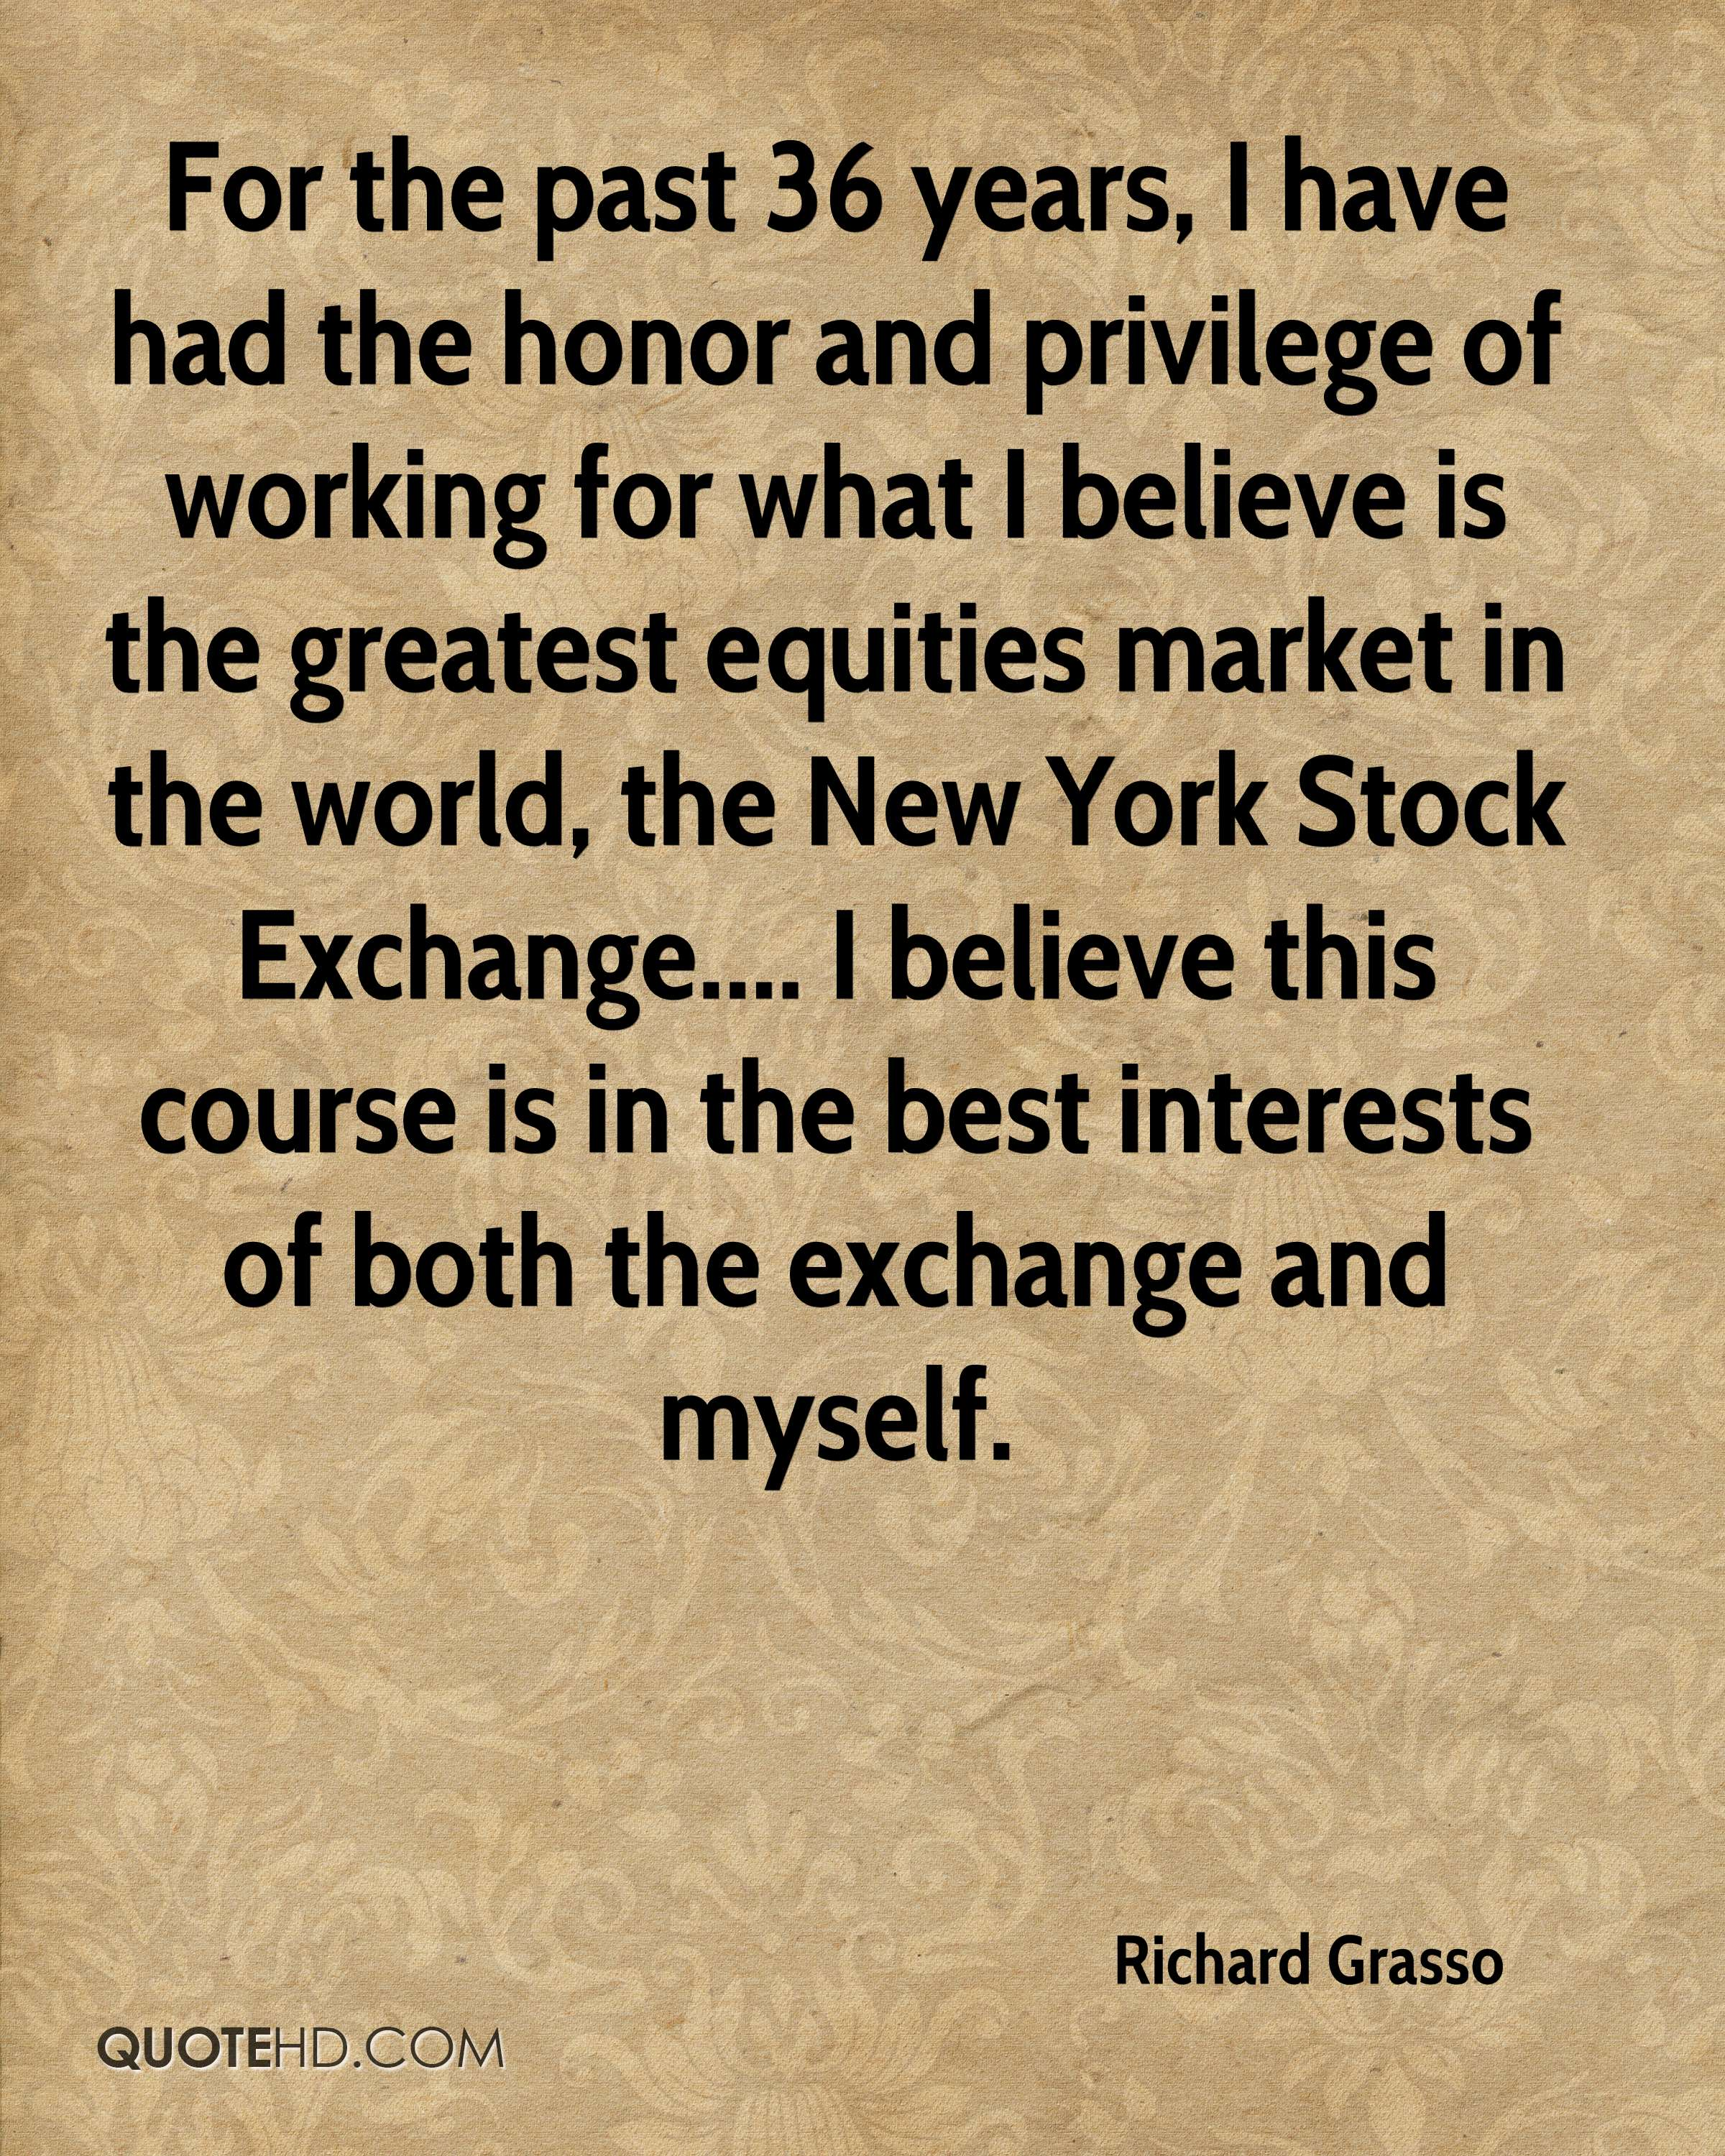 For the past 36 years, I have had the honor and privilege of working for what I believe is the greatest equities market in the world, the New York Stock Exchange.... I believe this course is in the best interests of both the exchange and myself.